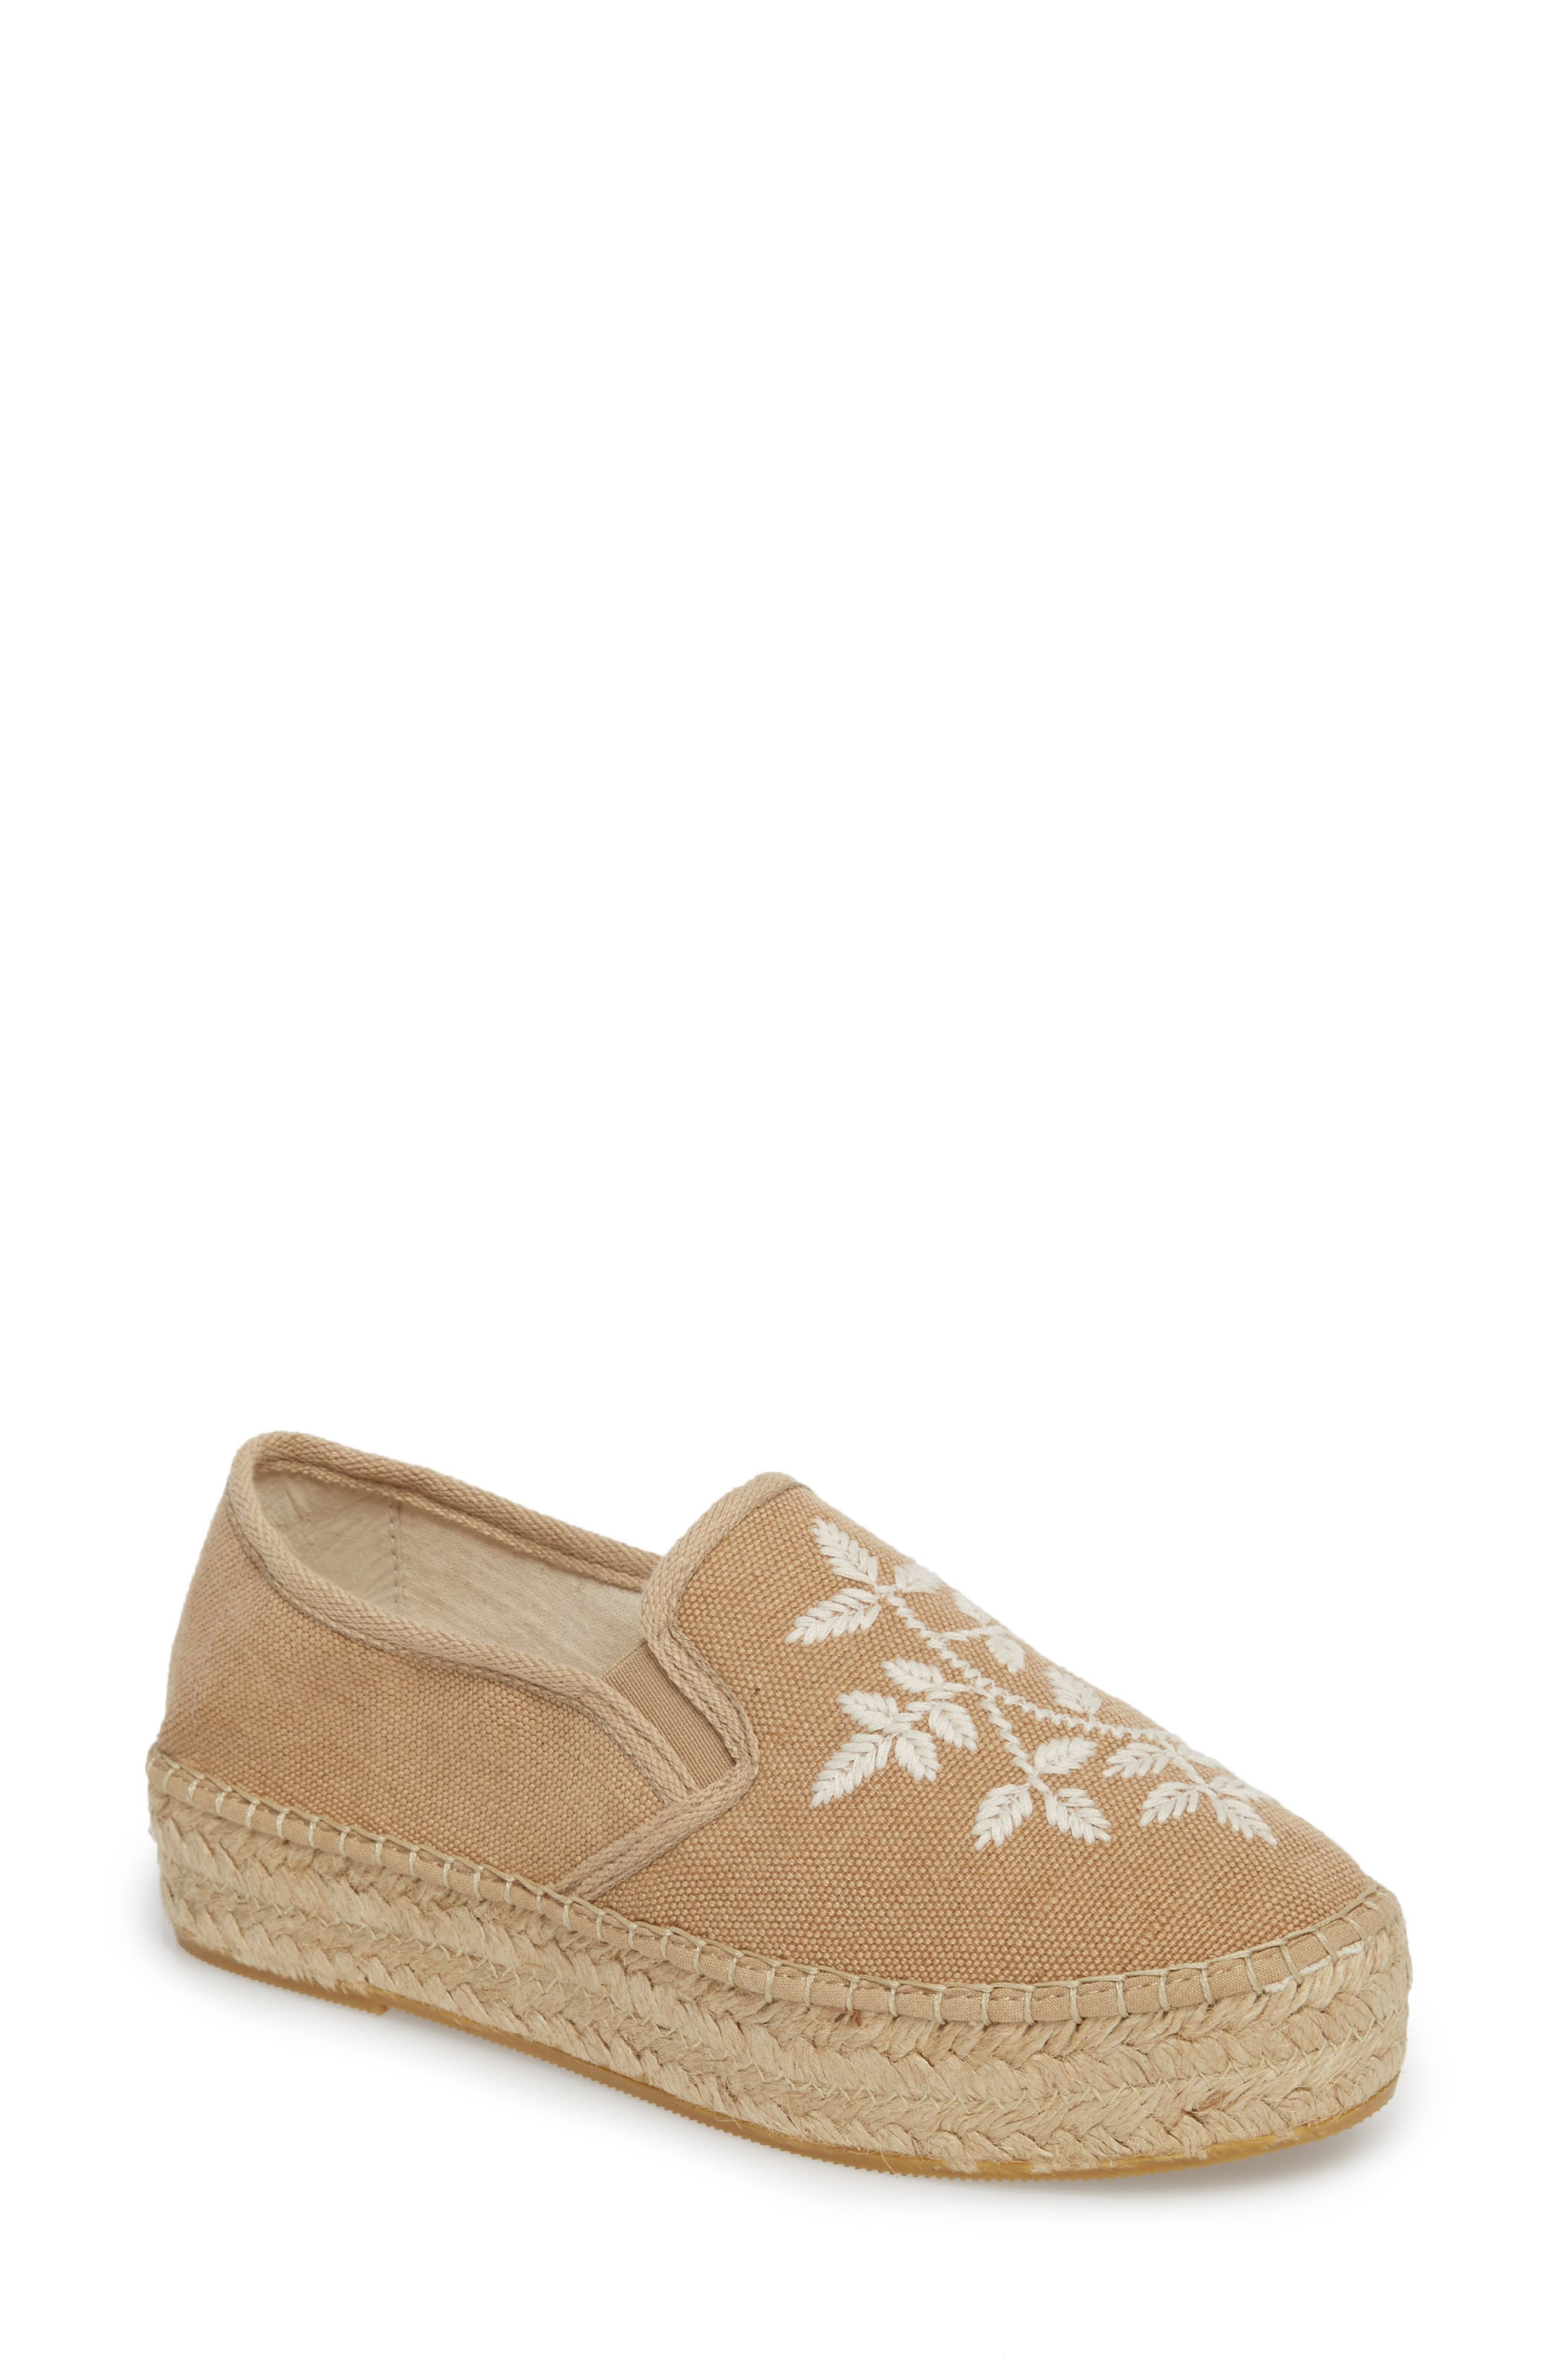 Florence Embroidered Platform Espadrille Sneaker,                             Main thumbnail 1, color,                             Tobacco Fabric